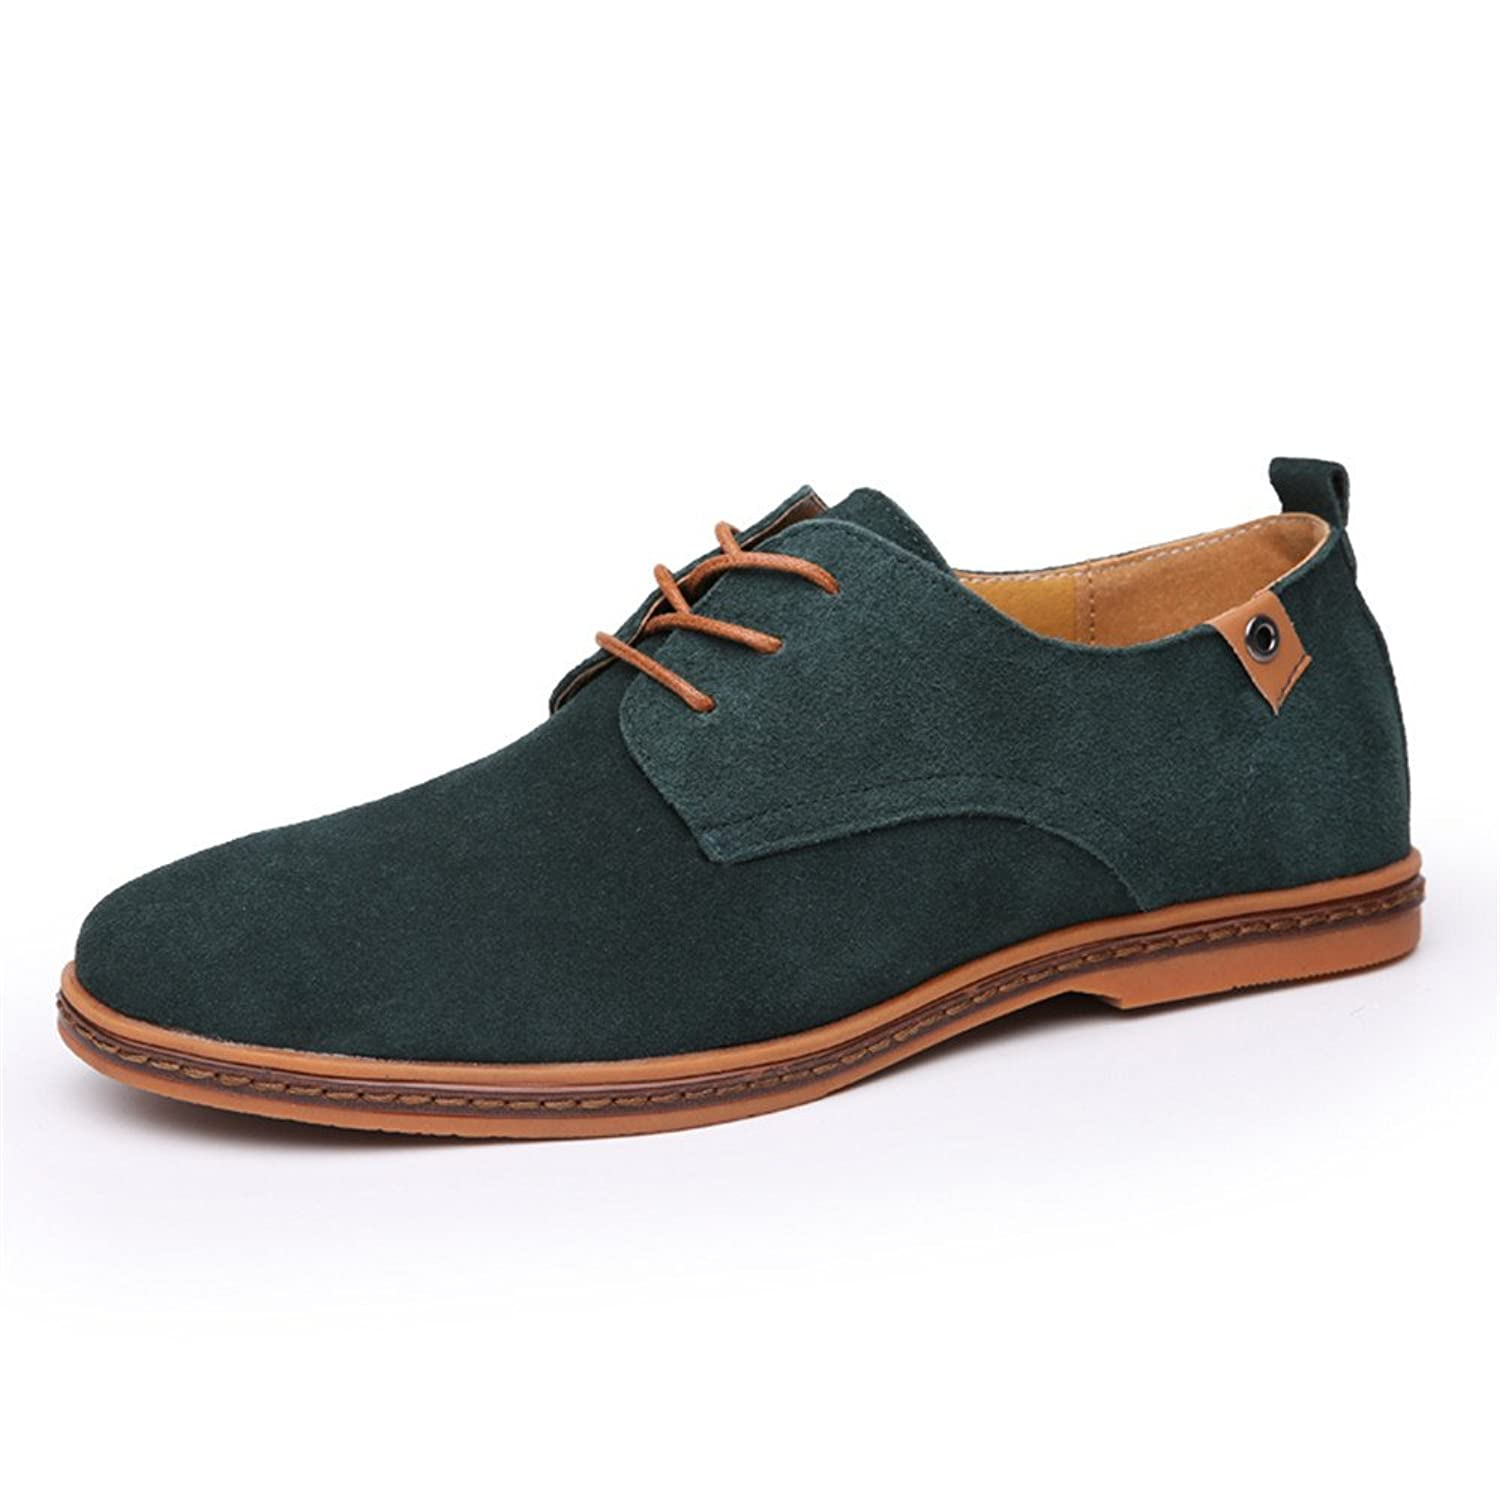 detailed look d6f9b 9be03 SHELAIDON - Zapatos Planos con Cordones Hombre